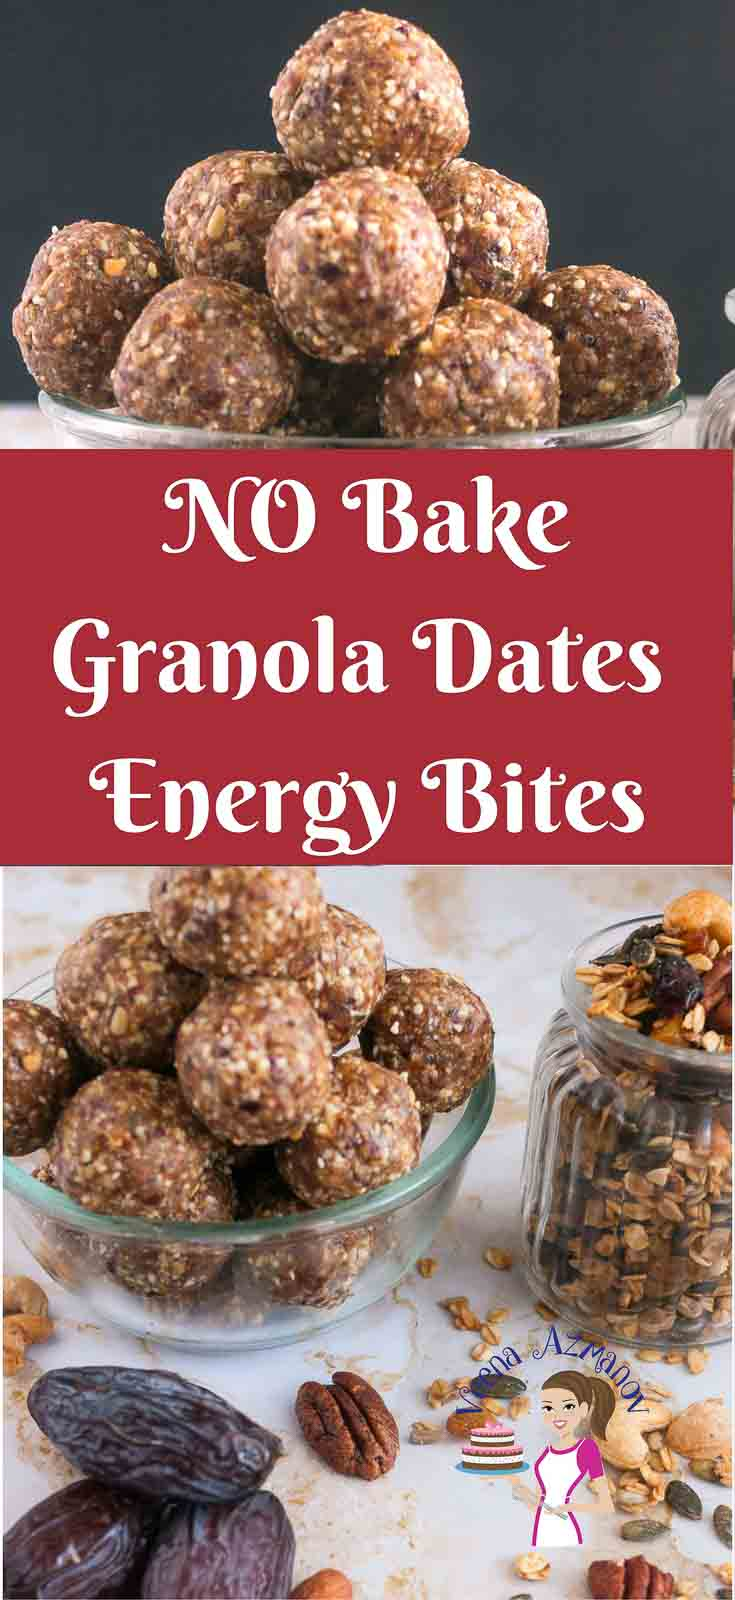 These no bake sugar free granola dates energy bites make great snack for those evening hours when you crave for something sweet and indulgent like cookies. The sweetness of the dates and added nutrition from the nuts make these a great light, nutritious energy packed snack before workouts too.